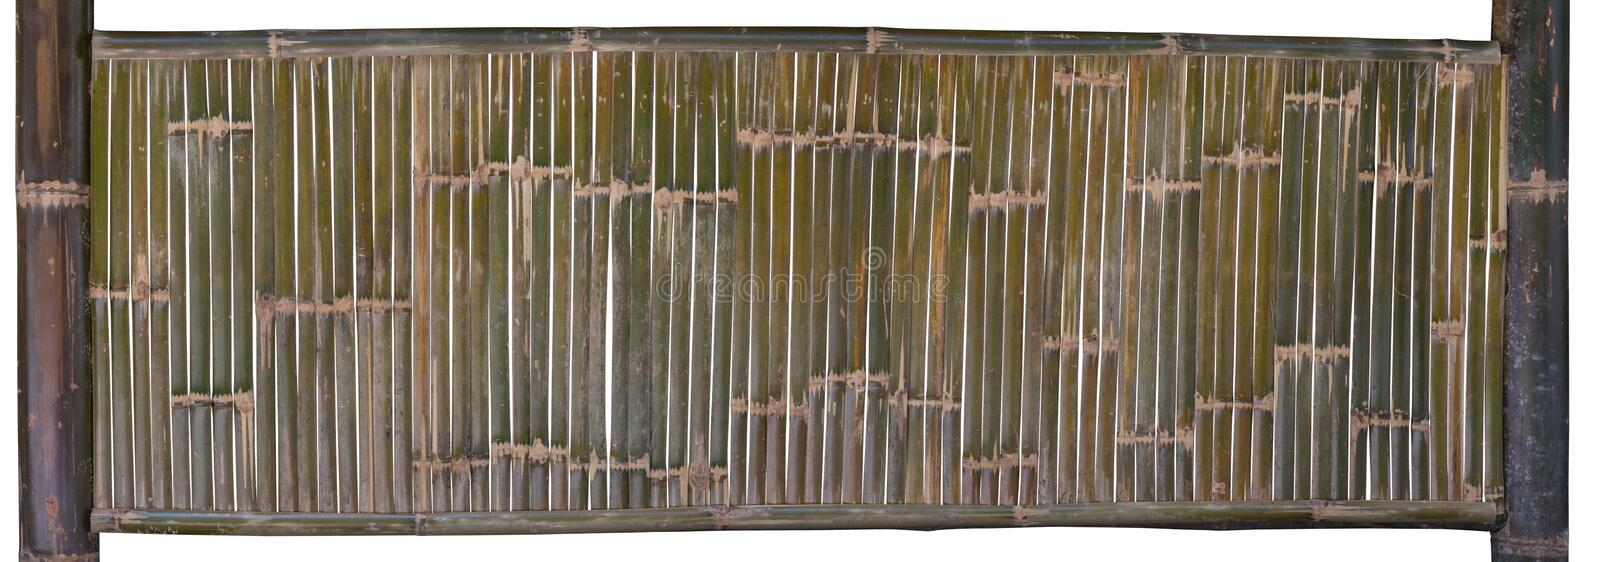 Green bamboo fence isolated on white background. clipping path.  stock image